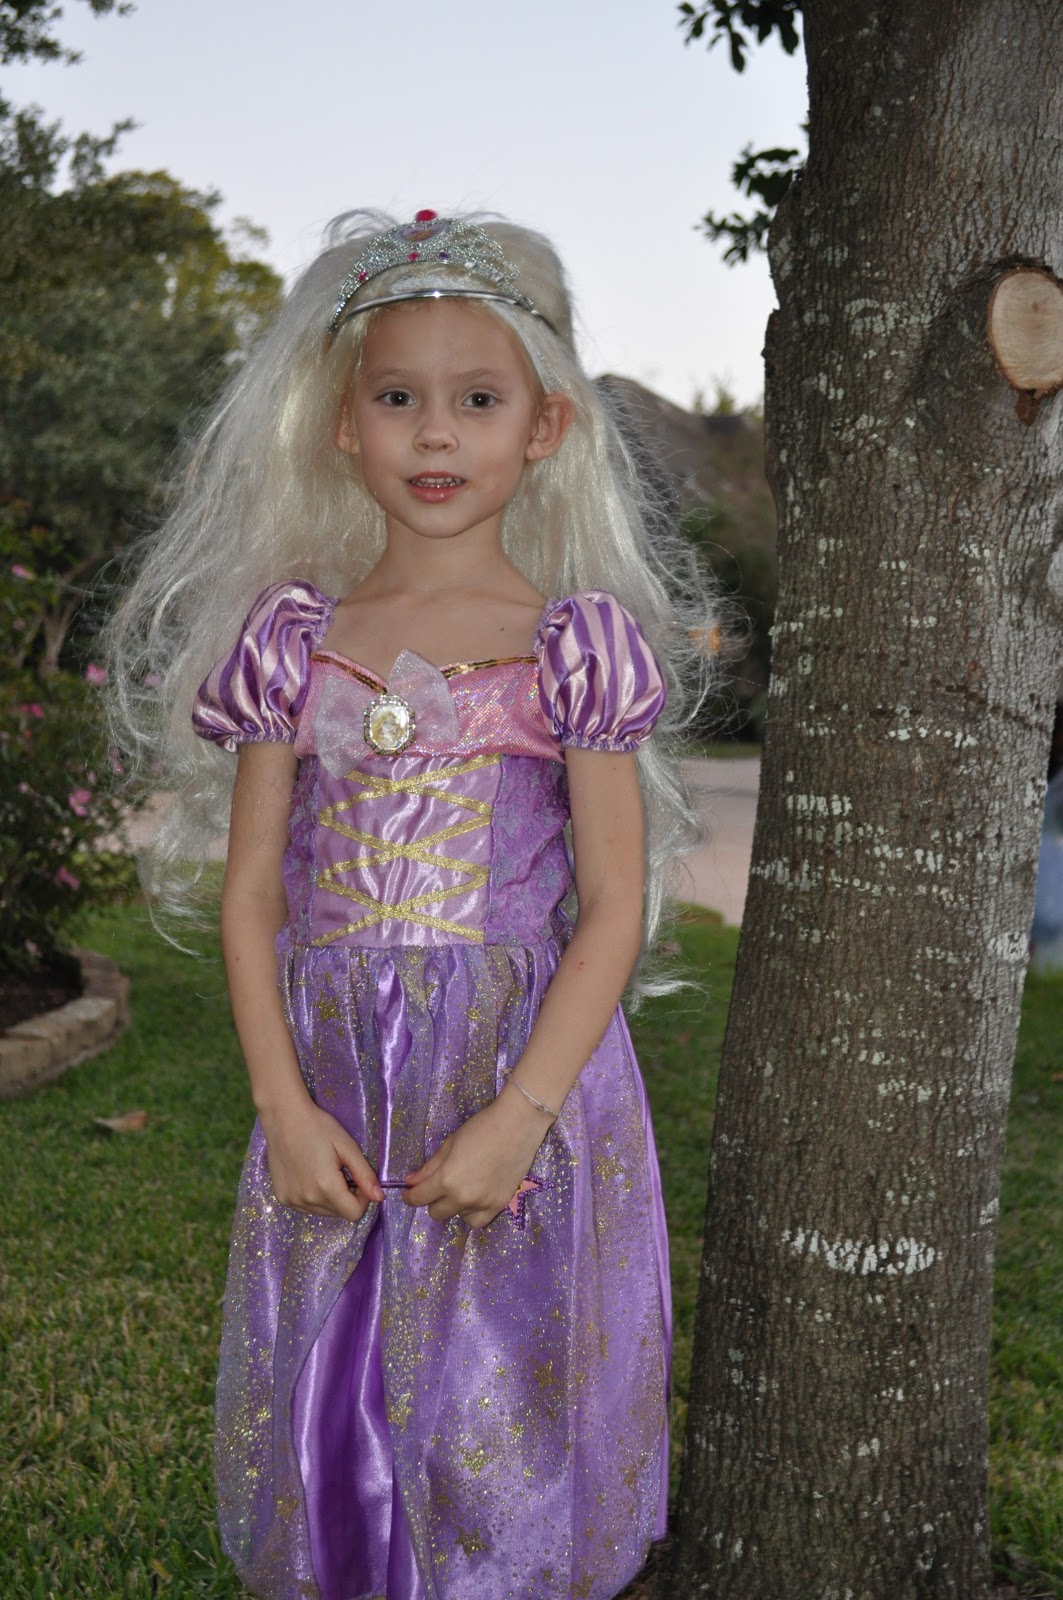 trick or treating (as toldnate) - best of times blog